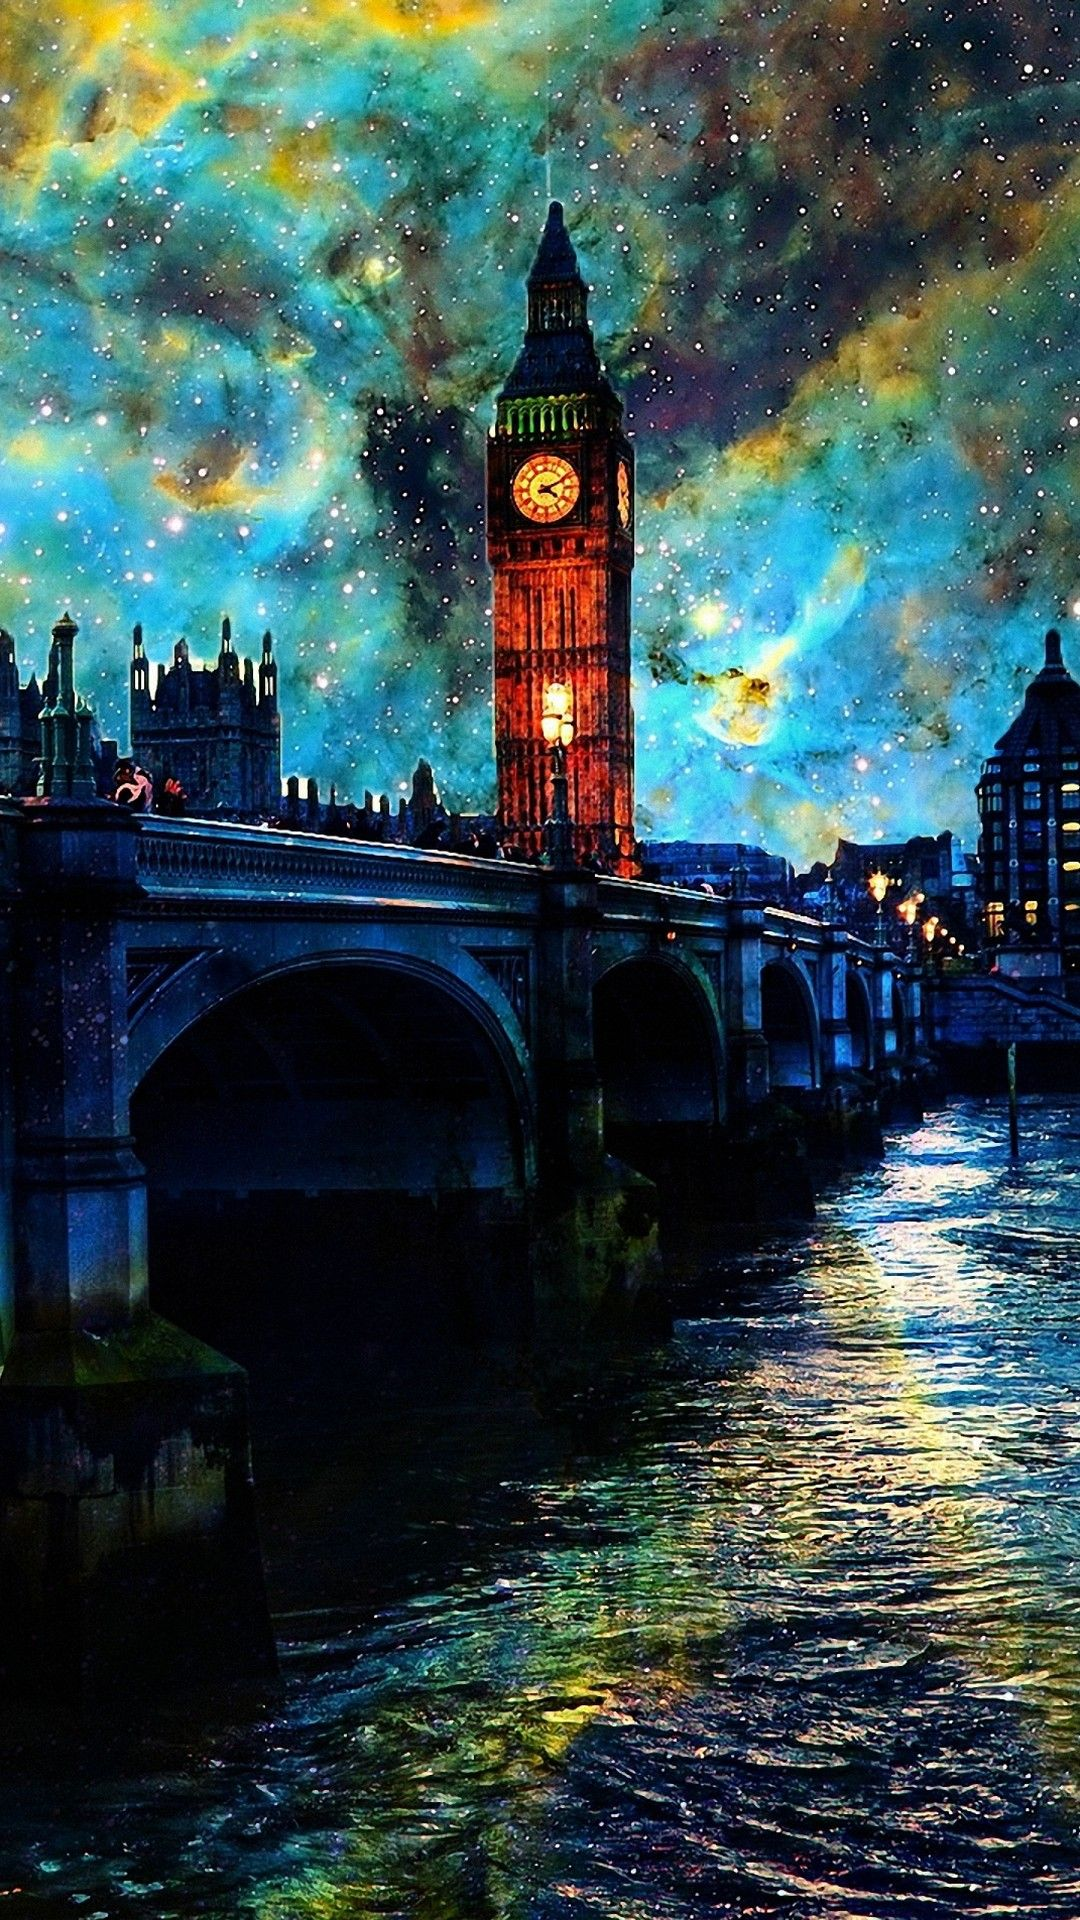 Amazing Wallpaper For Android Best Android Wallpapers London Painting London Wallpaper Iphone 6s Wallpaper